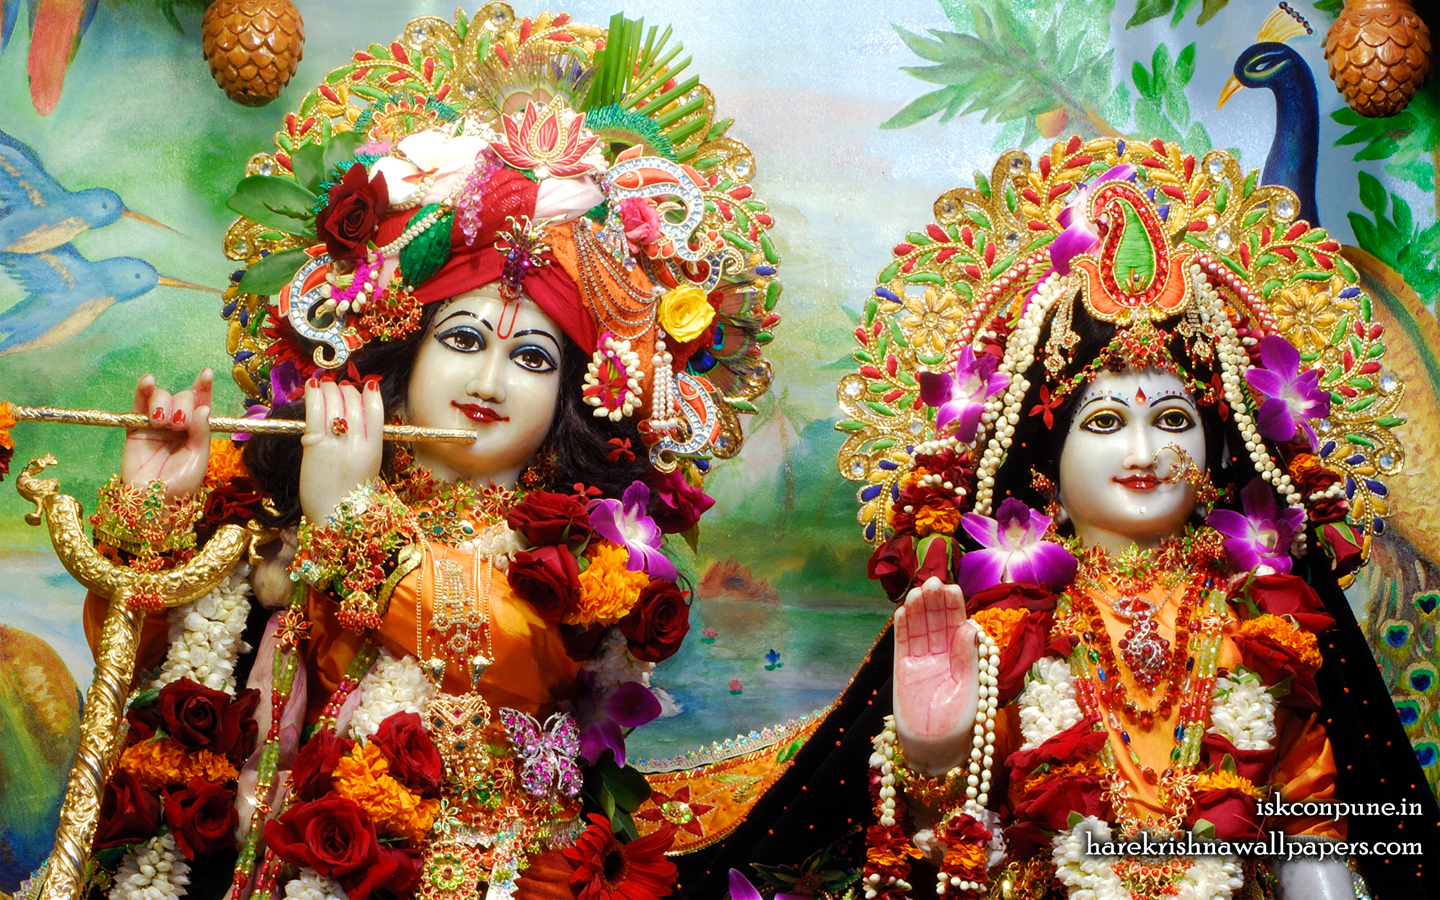 Sri Sri Radha Kunjabihari Close up Wallpaper (001) Size 1440x900 Download